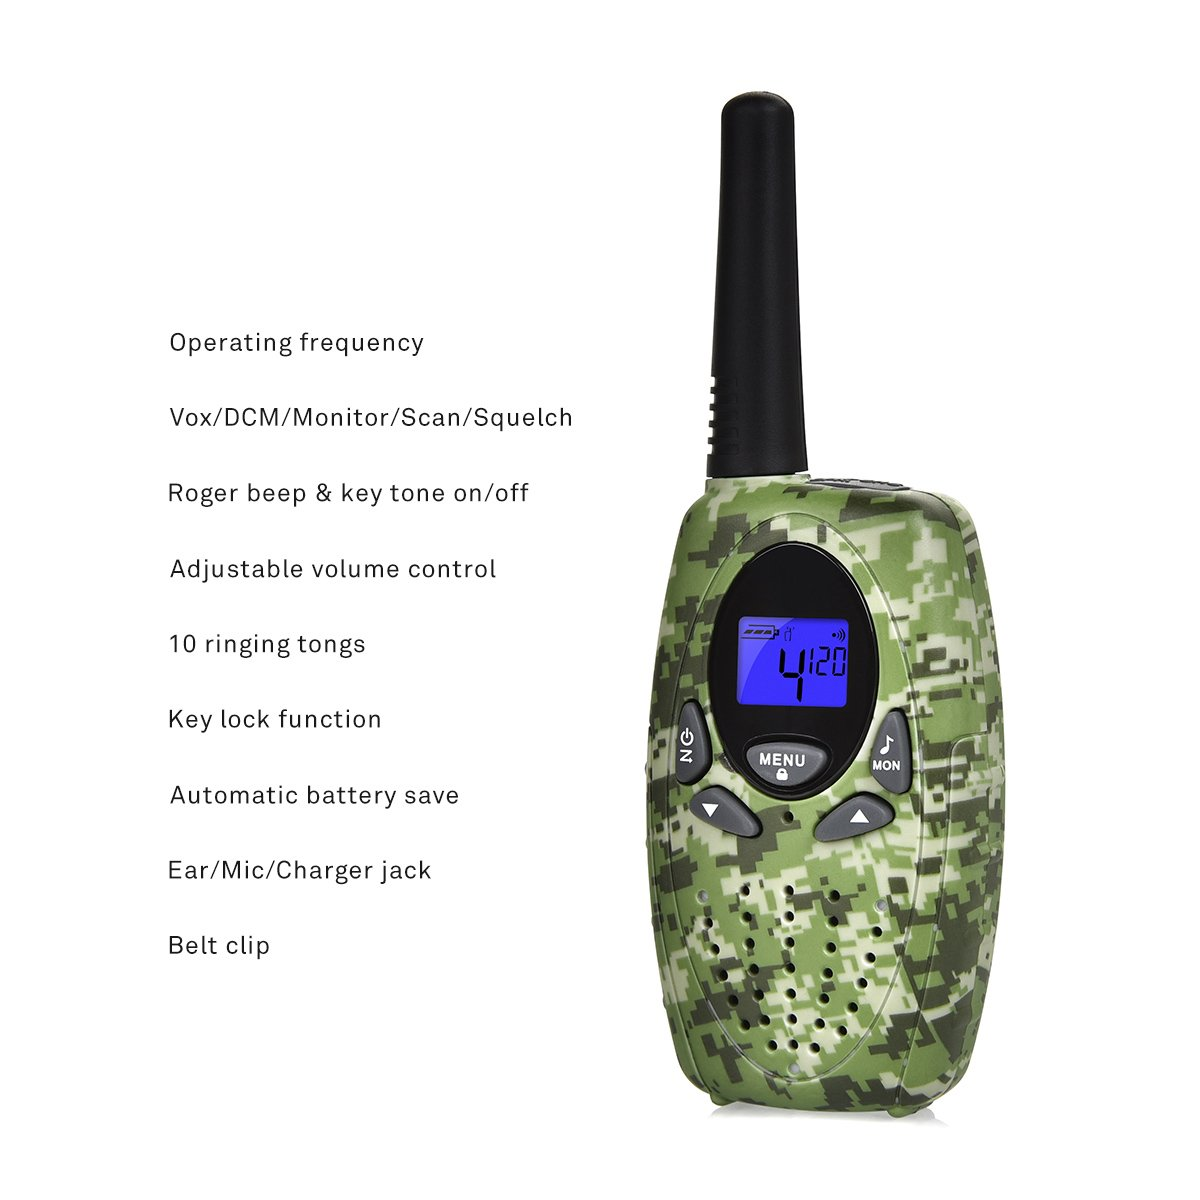 Swiftion Handheld Kids Walkie Talkies boys Rechargeable 22 Channel 0.5W FRS/GMRS Walky Talky Kids 2 Way Radios Kids walkie talkies camouflage disruptive pattern (Camouflage)